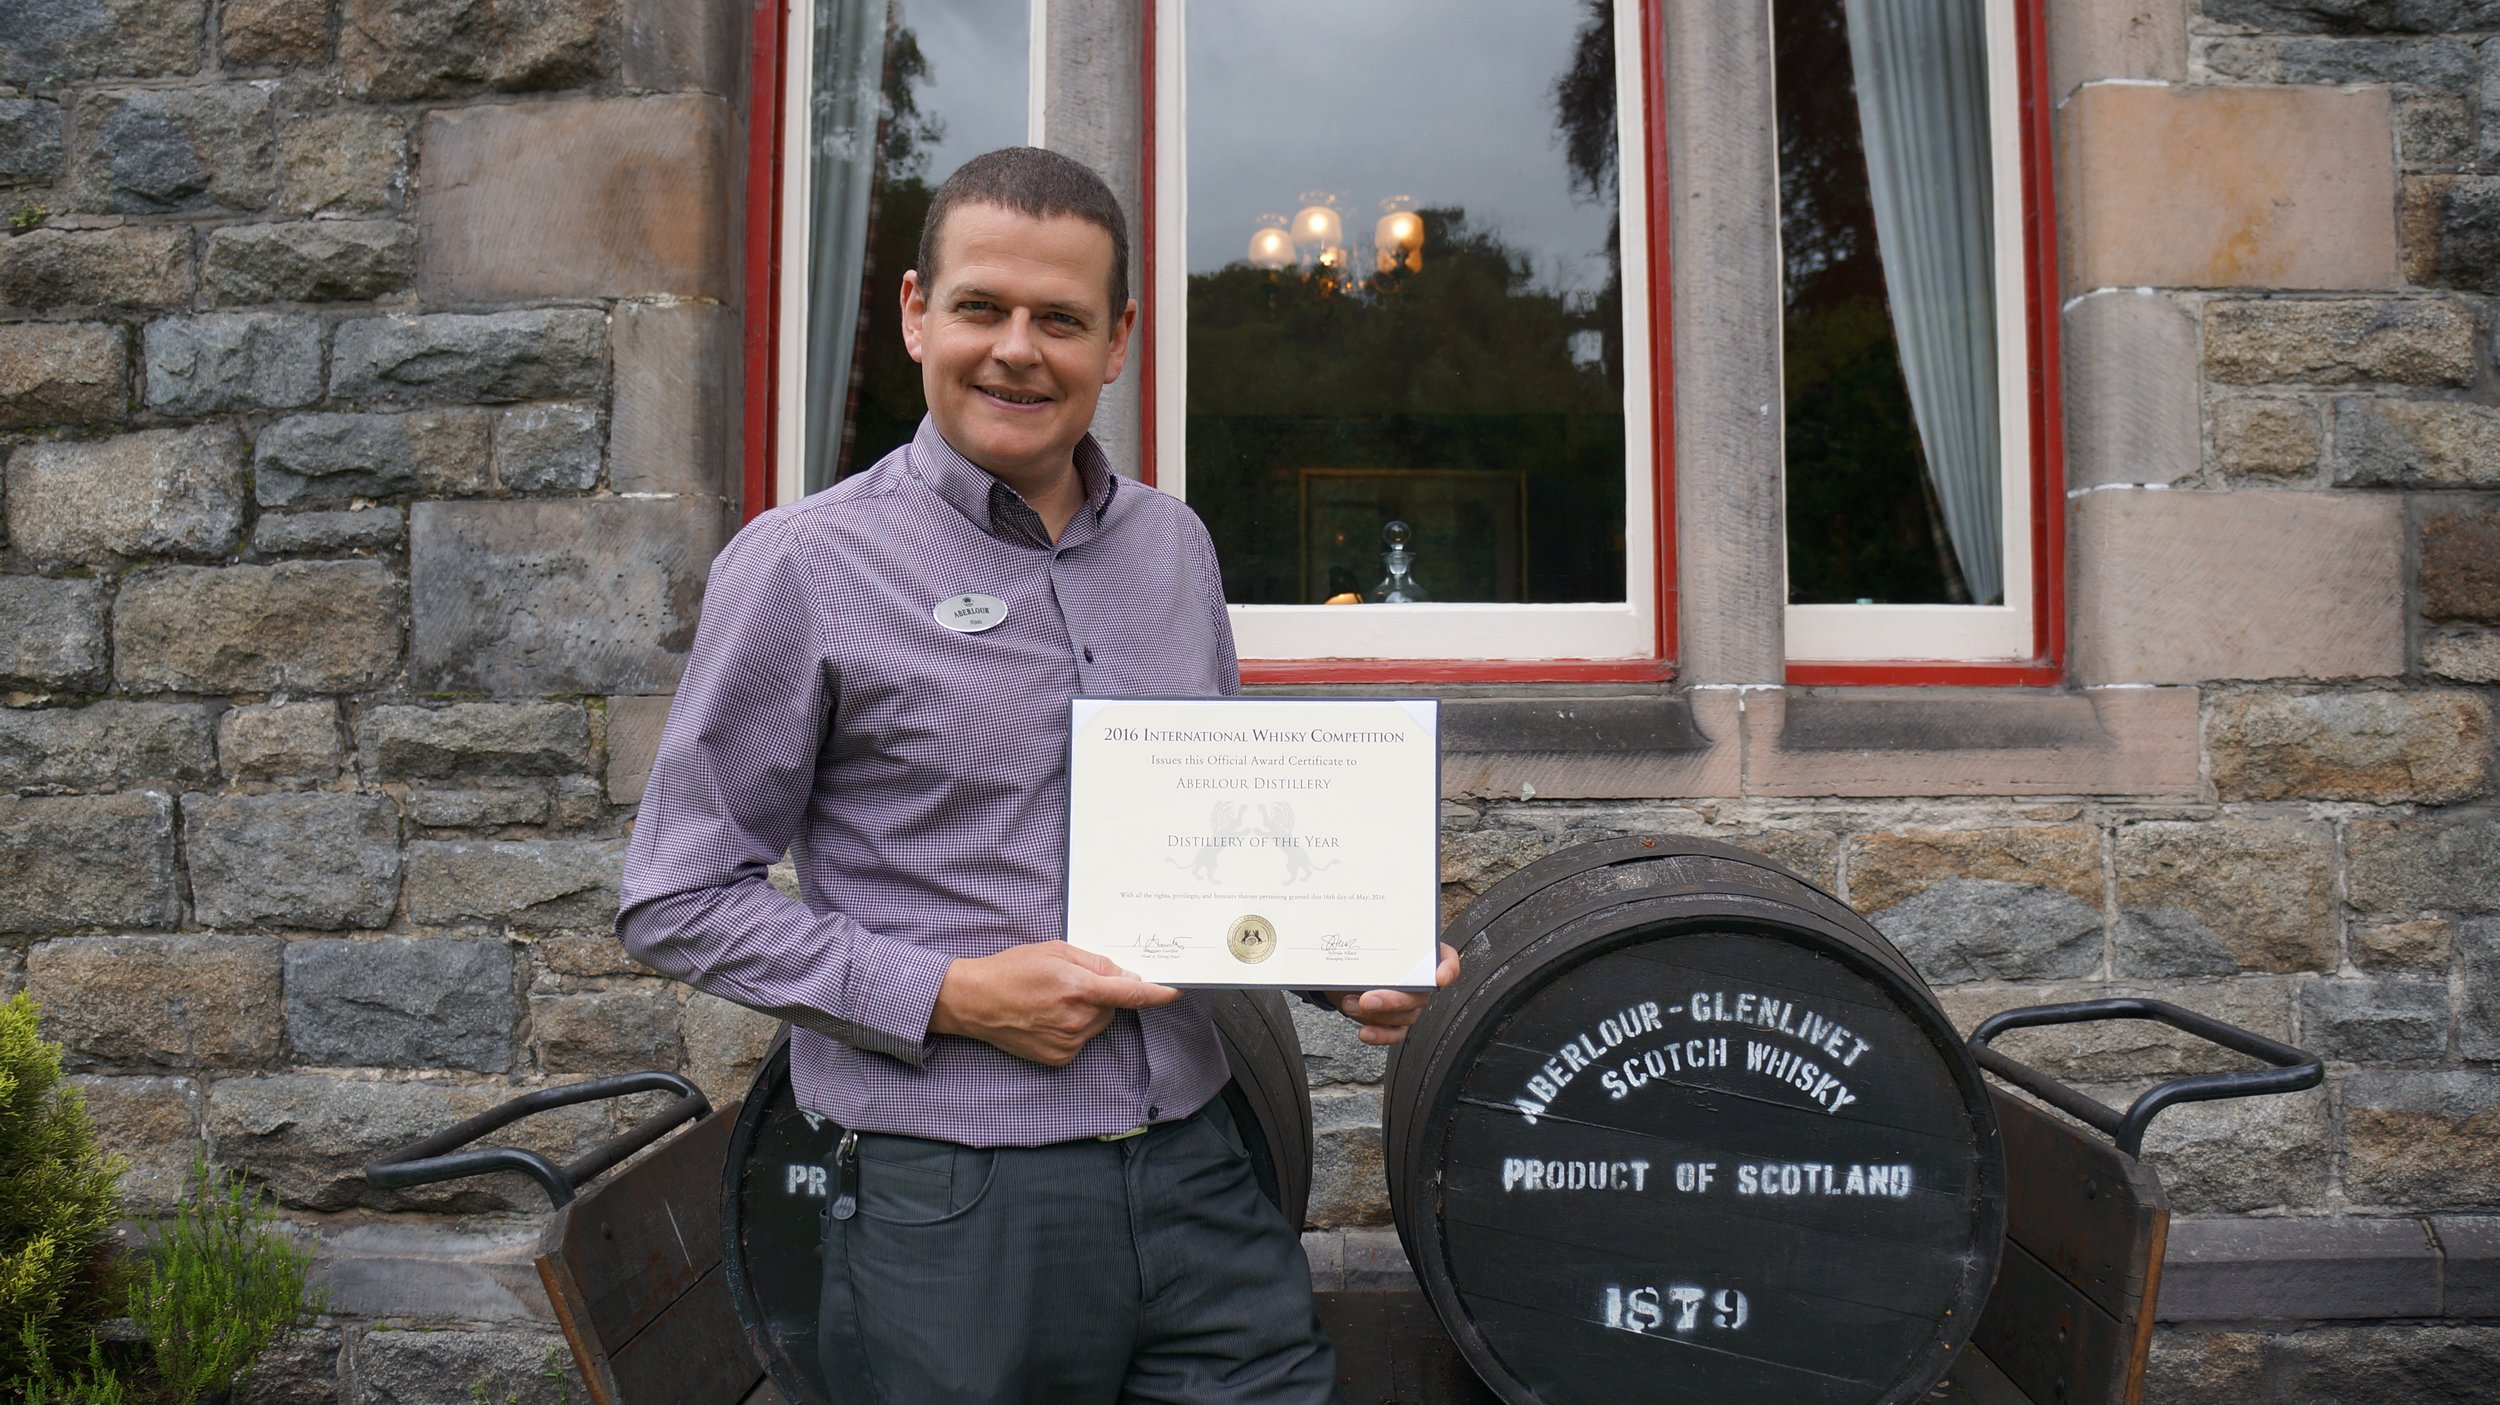 Rikki Scott, Distillery Manager, Aberlour